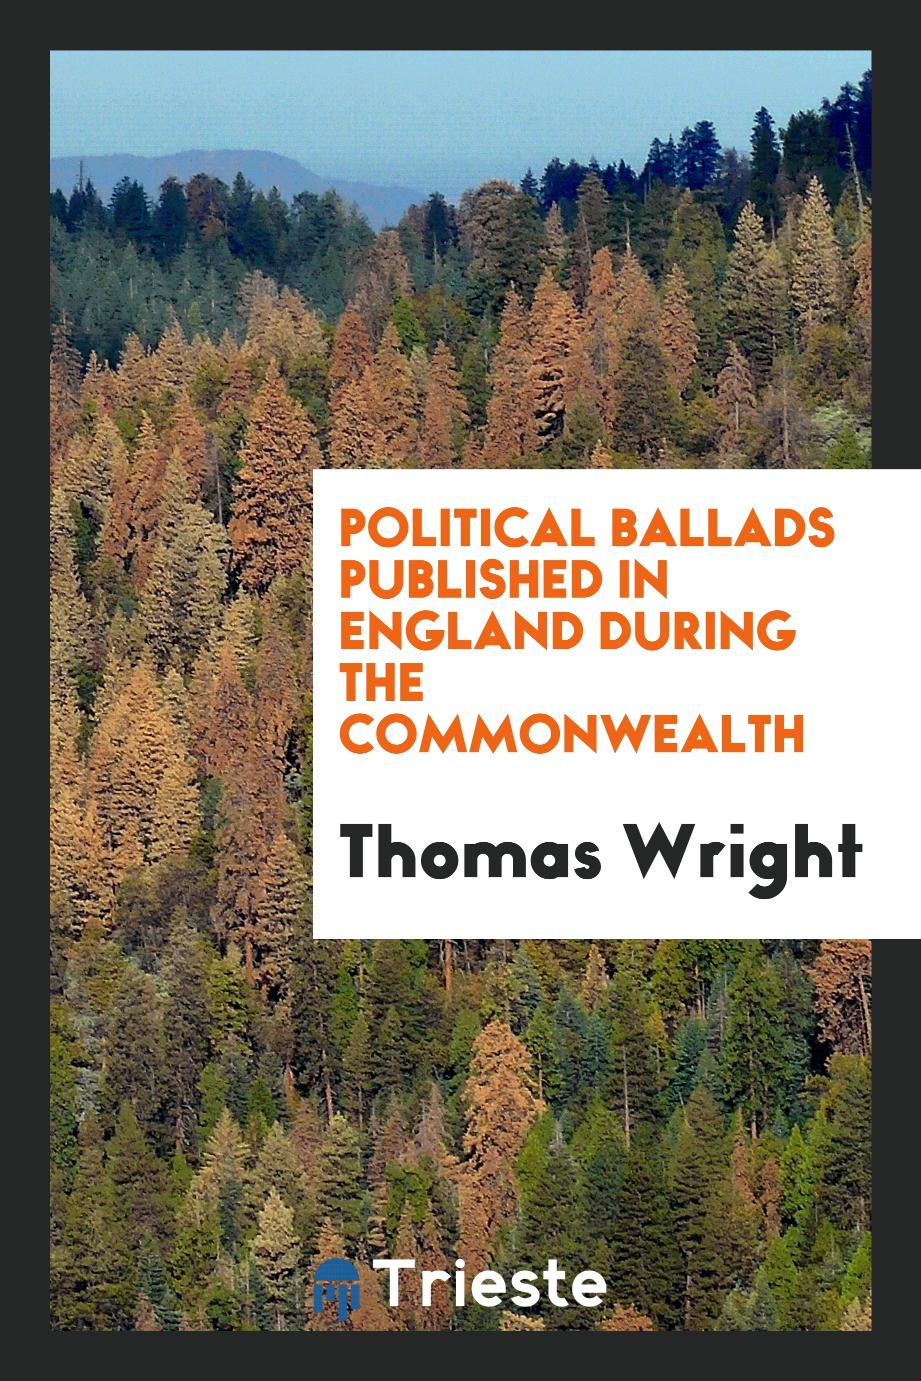 Political ballads published in England during the commonwealth